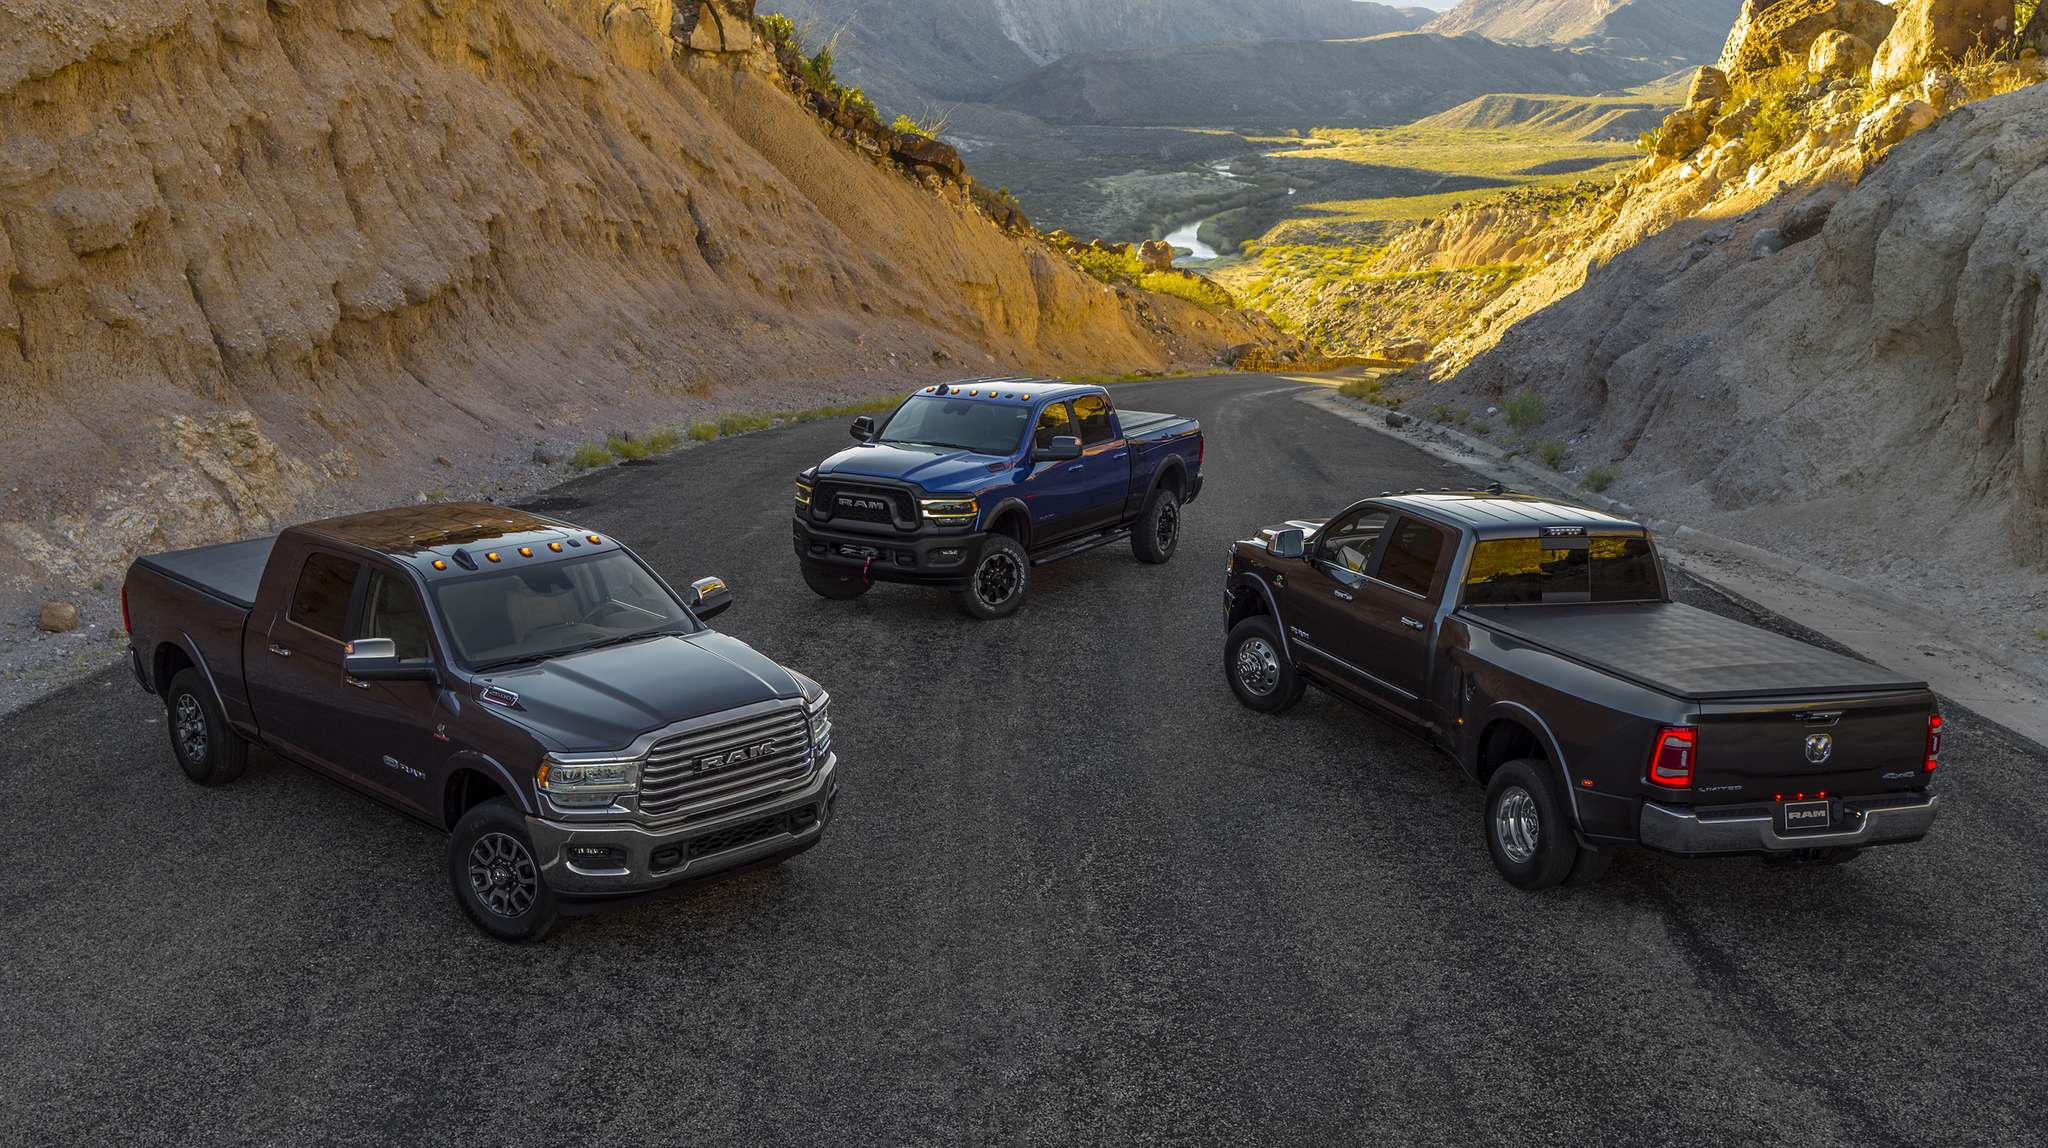 Photos by FCAThe 2019 Ram lineup includes the 2500 Heavy Duty Longhorn Mega Cab (from left), Power Wagon and 3500 Heavy Duty Limited Crew Cab Dually.